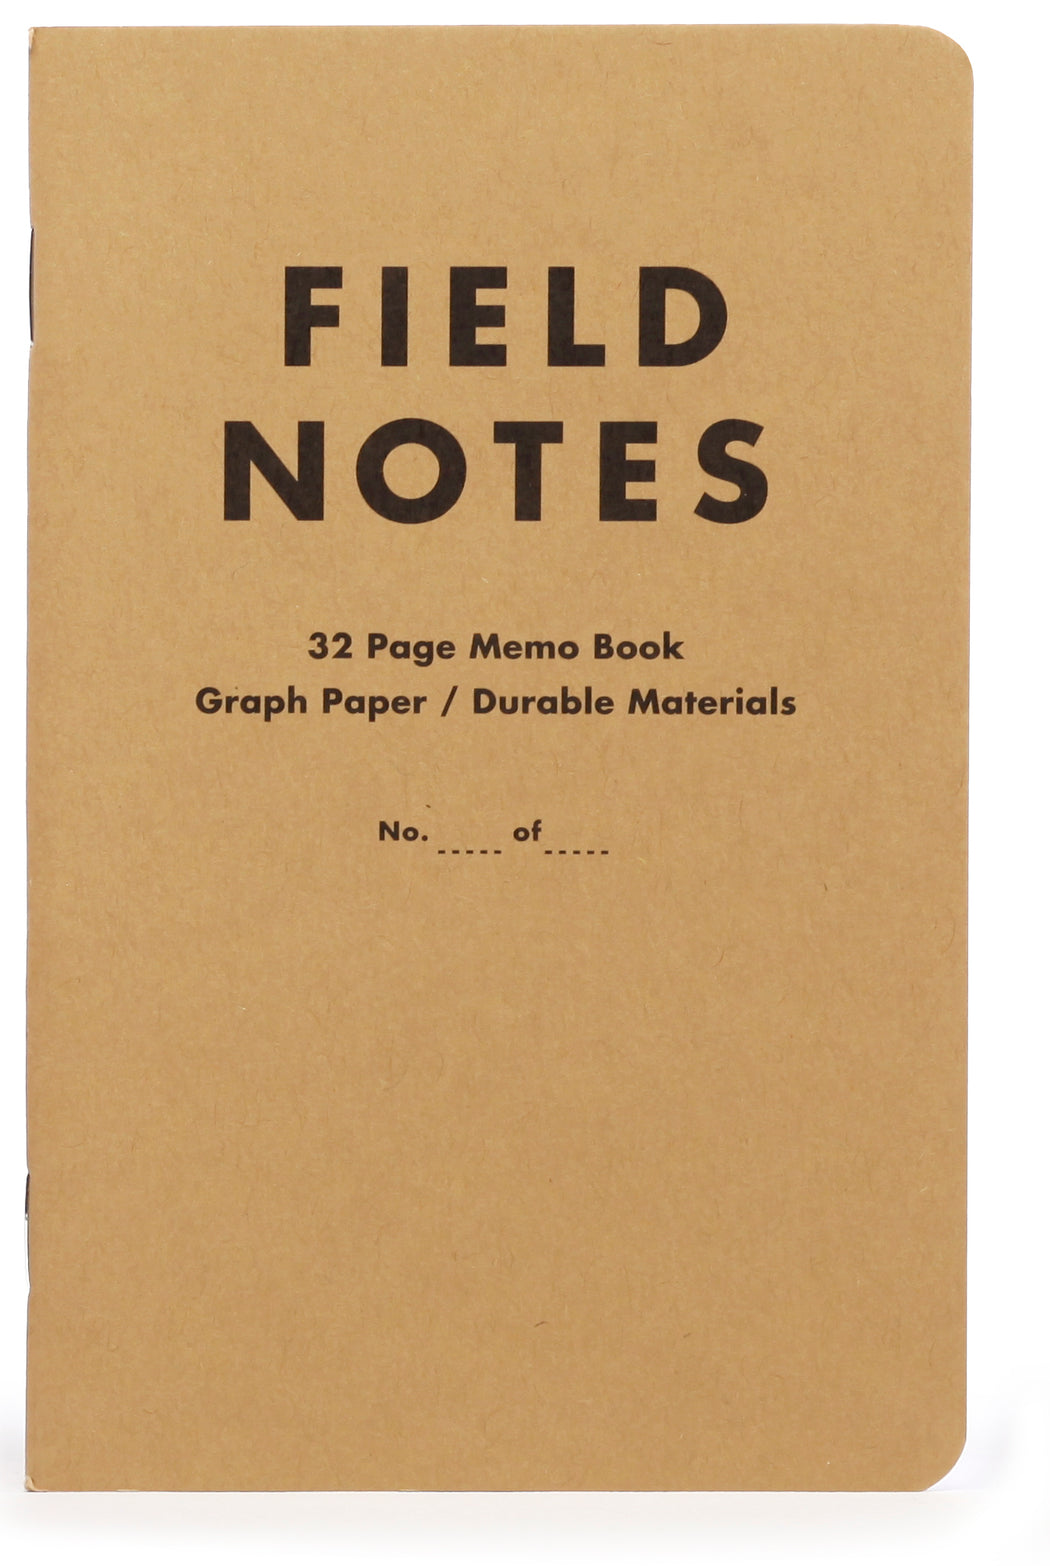 10th Anniversary 3-Pack, Field Notes, - Felding Co